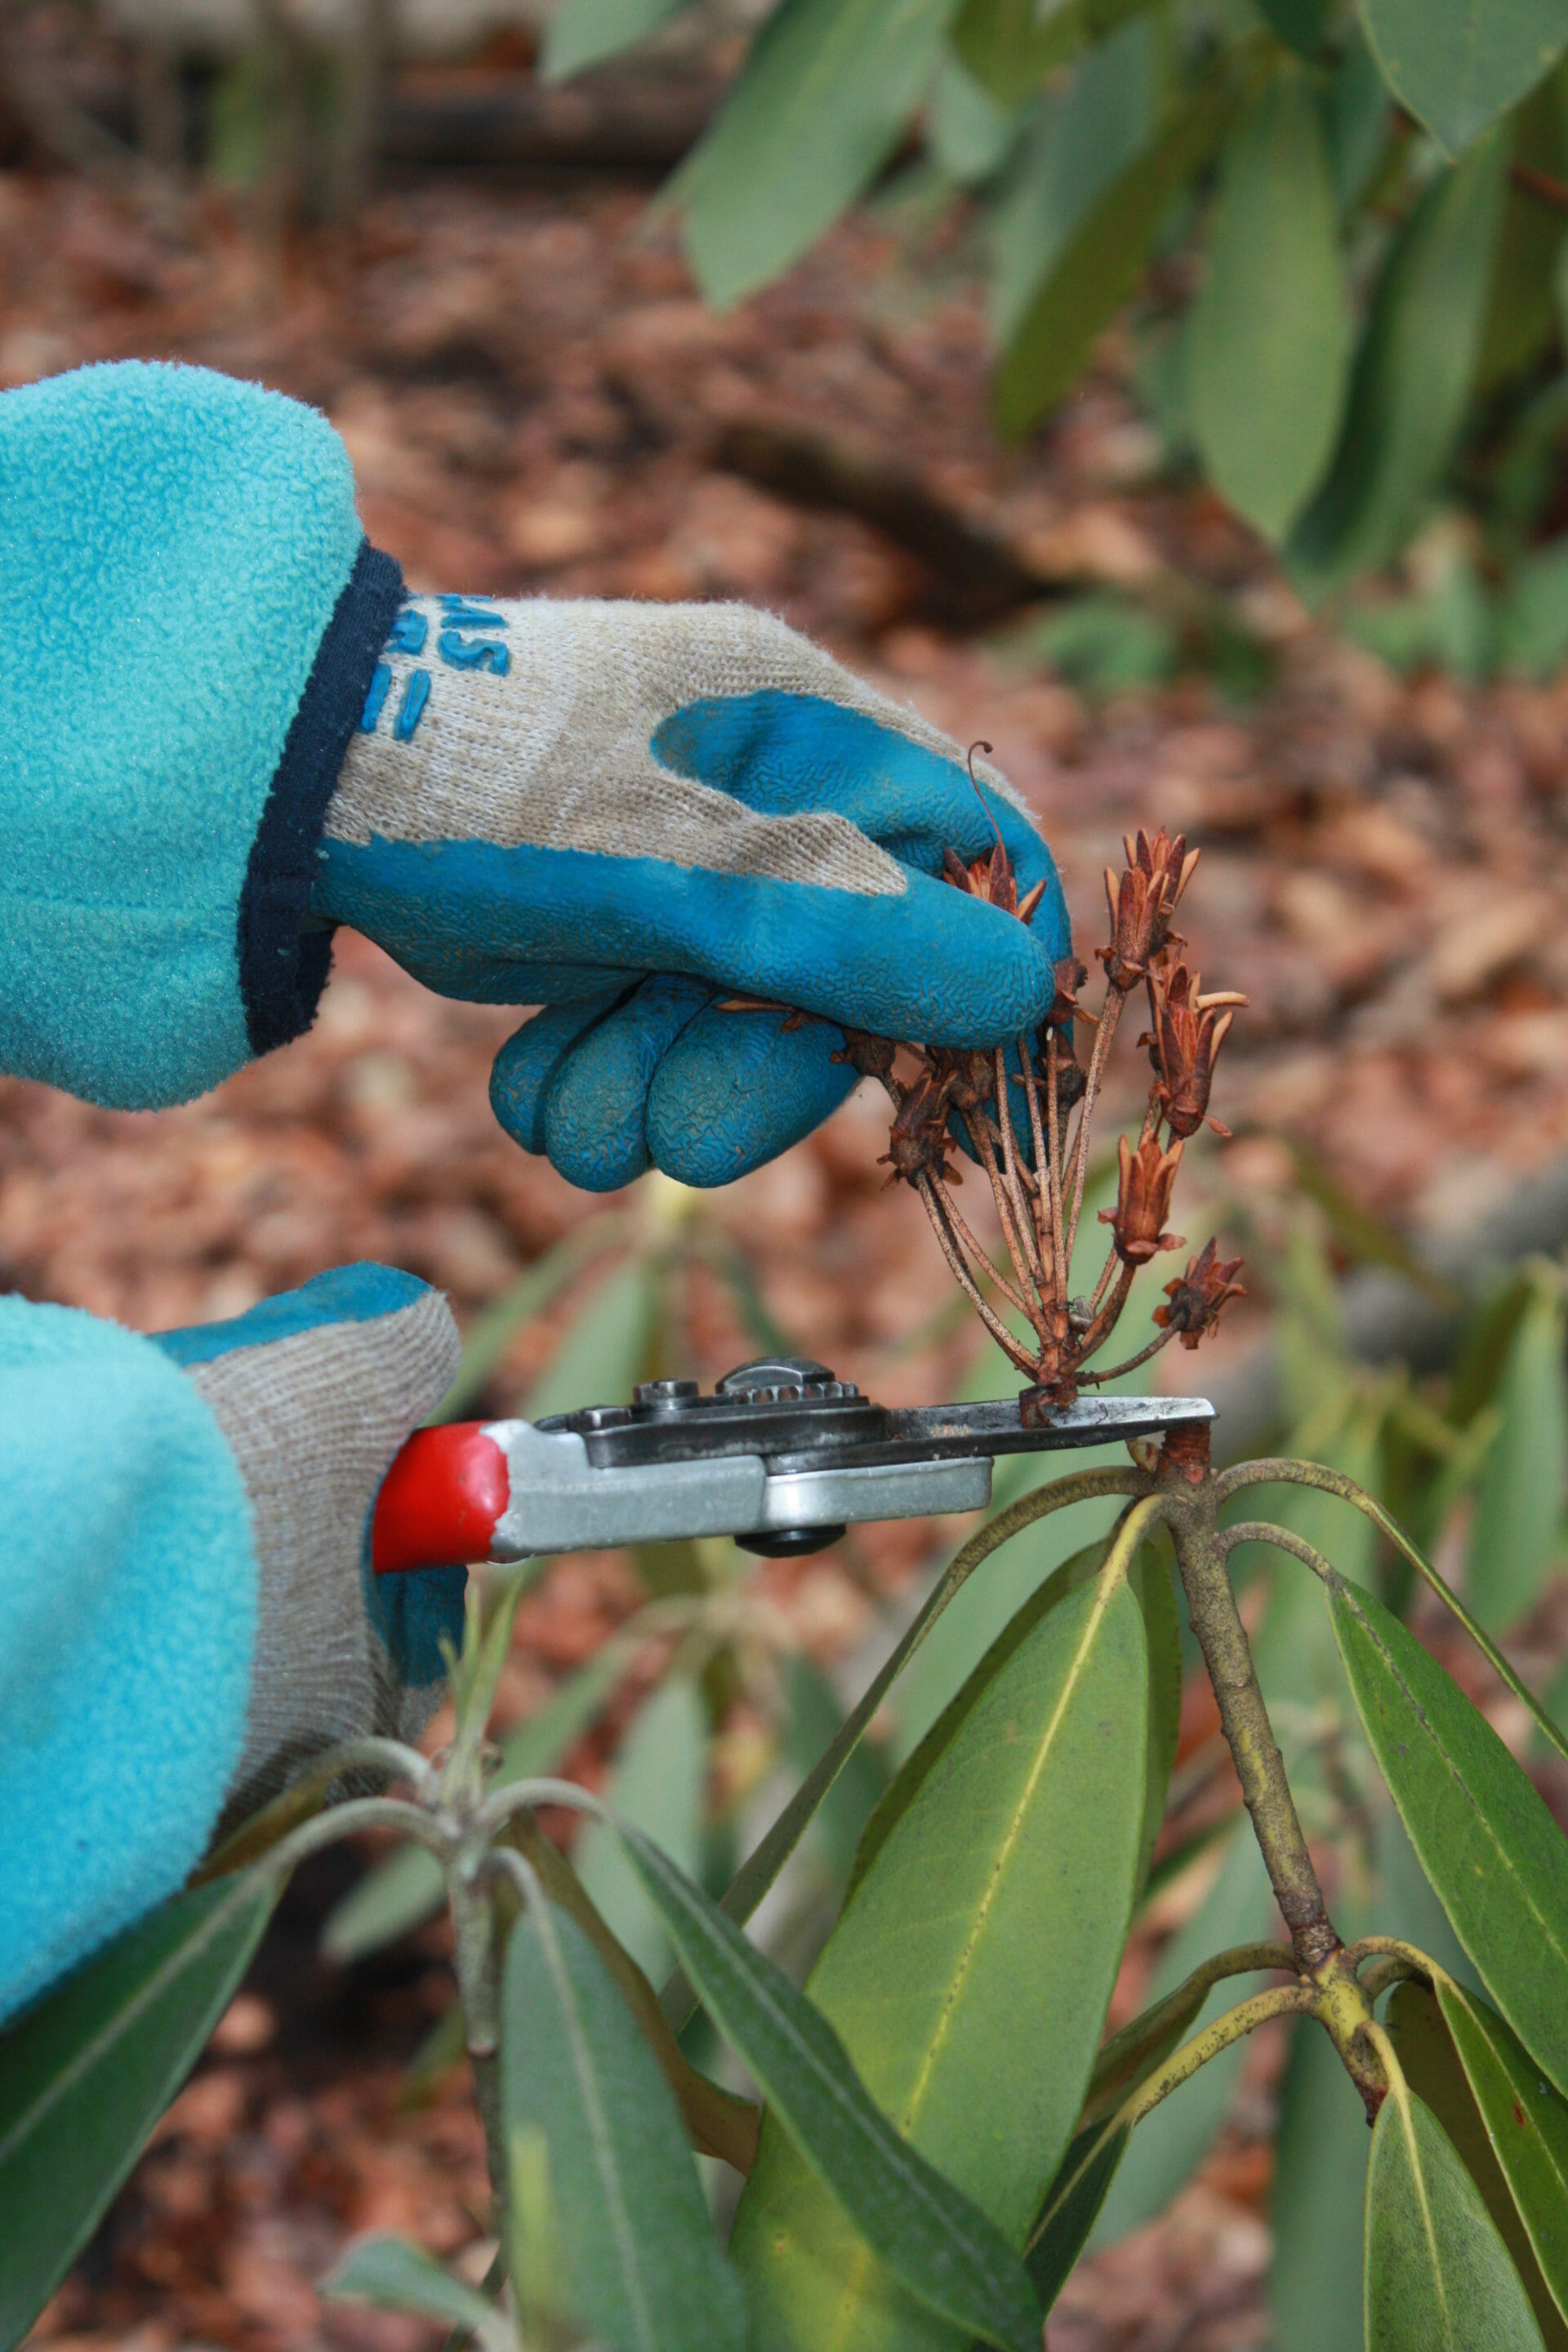 Pruning for homeowners.